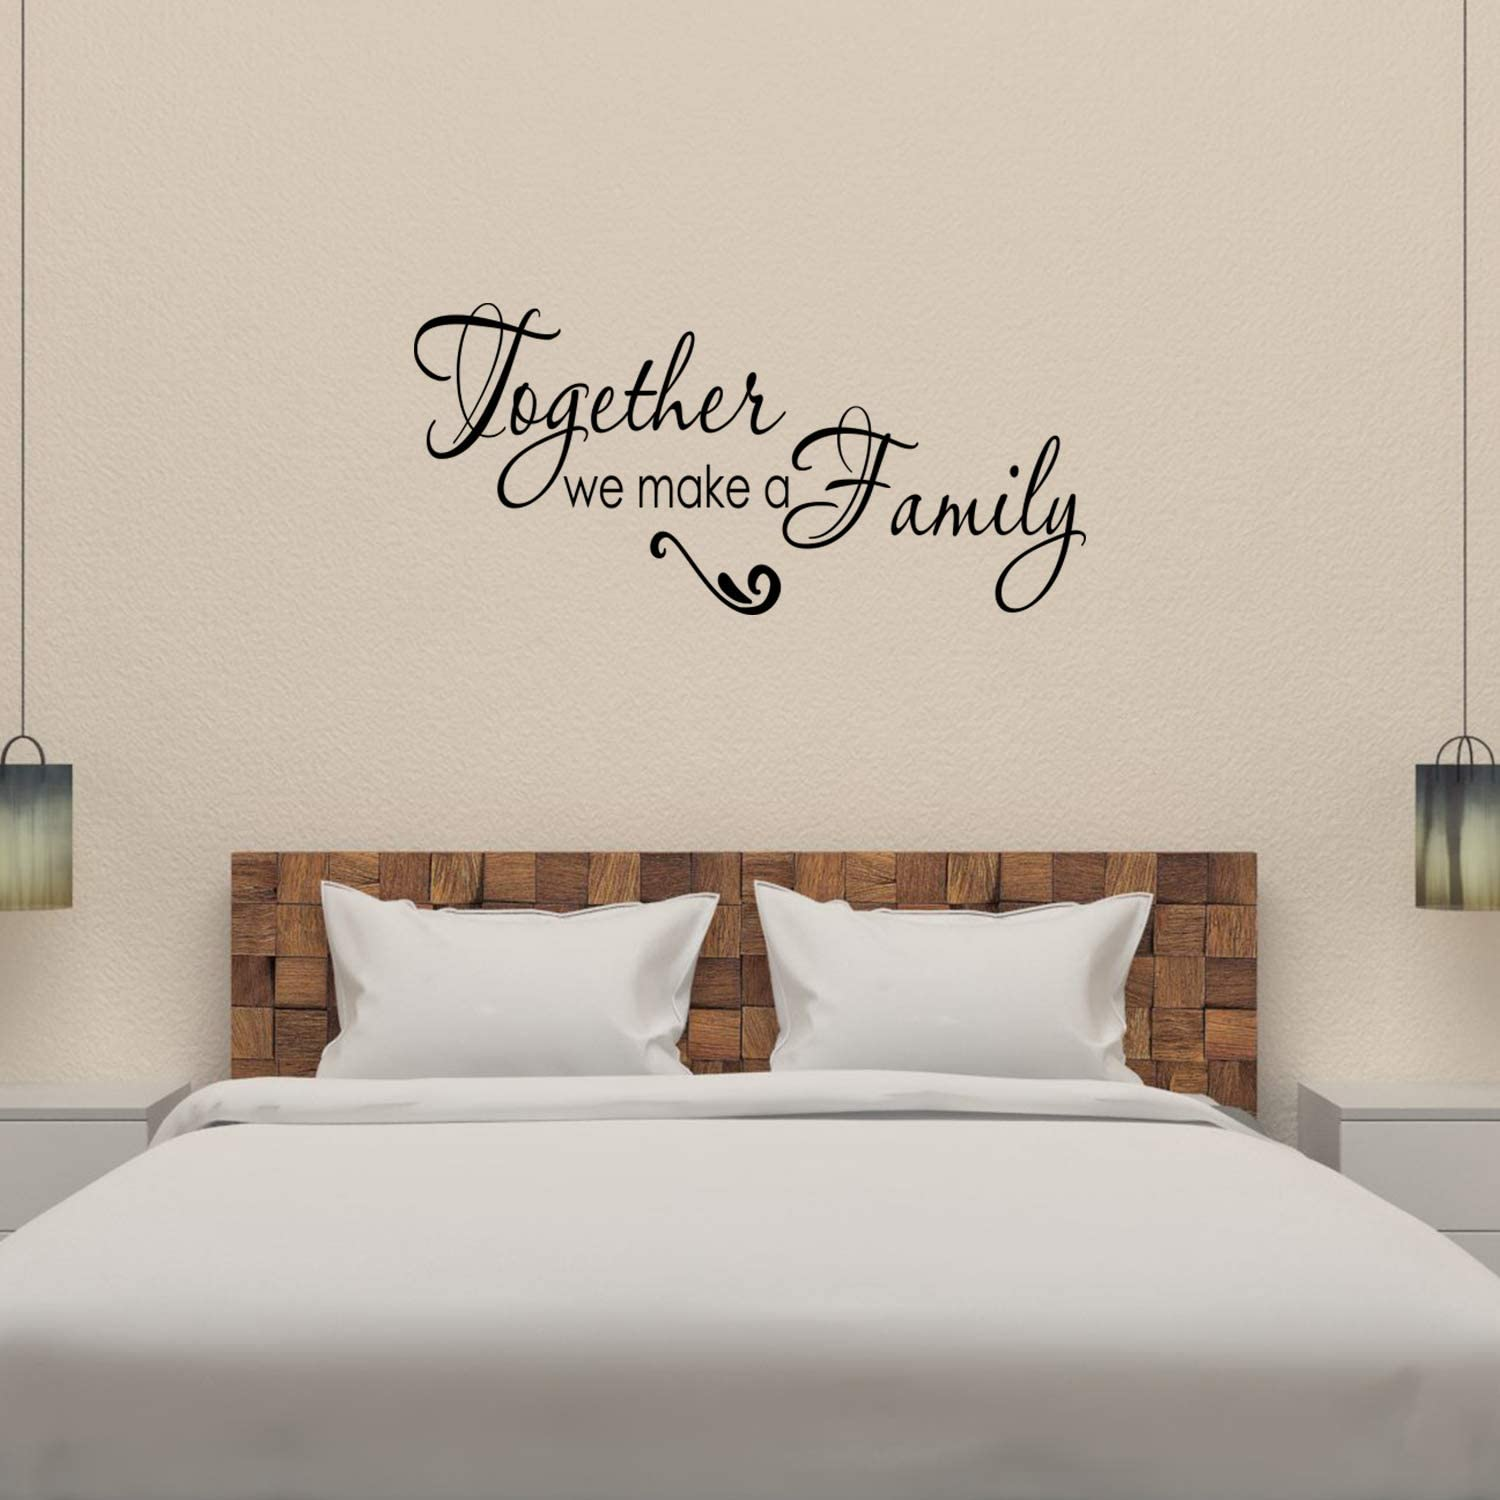 Lettering Cabin Vinyl Wall Decal Wall Decal Quote Cabin Wall Quote Life is Better At the Cabin Vinyl Decal Cabin Vinyl Saying 26x9.35